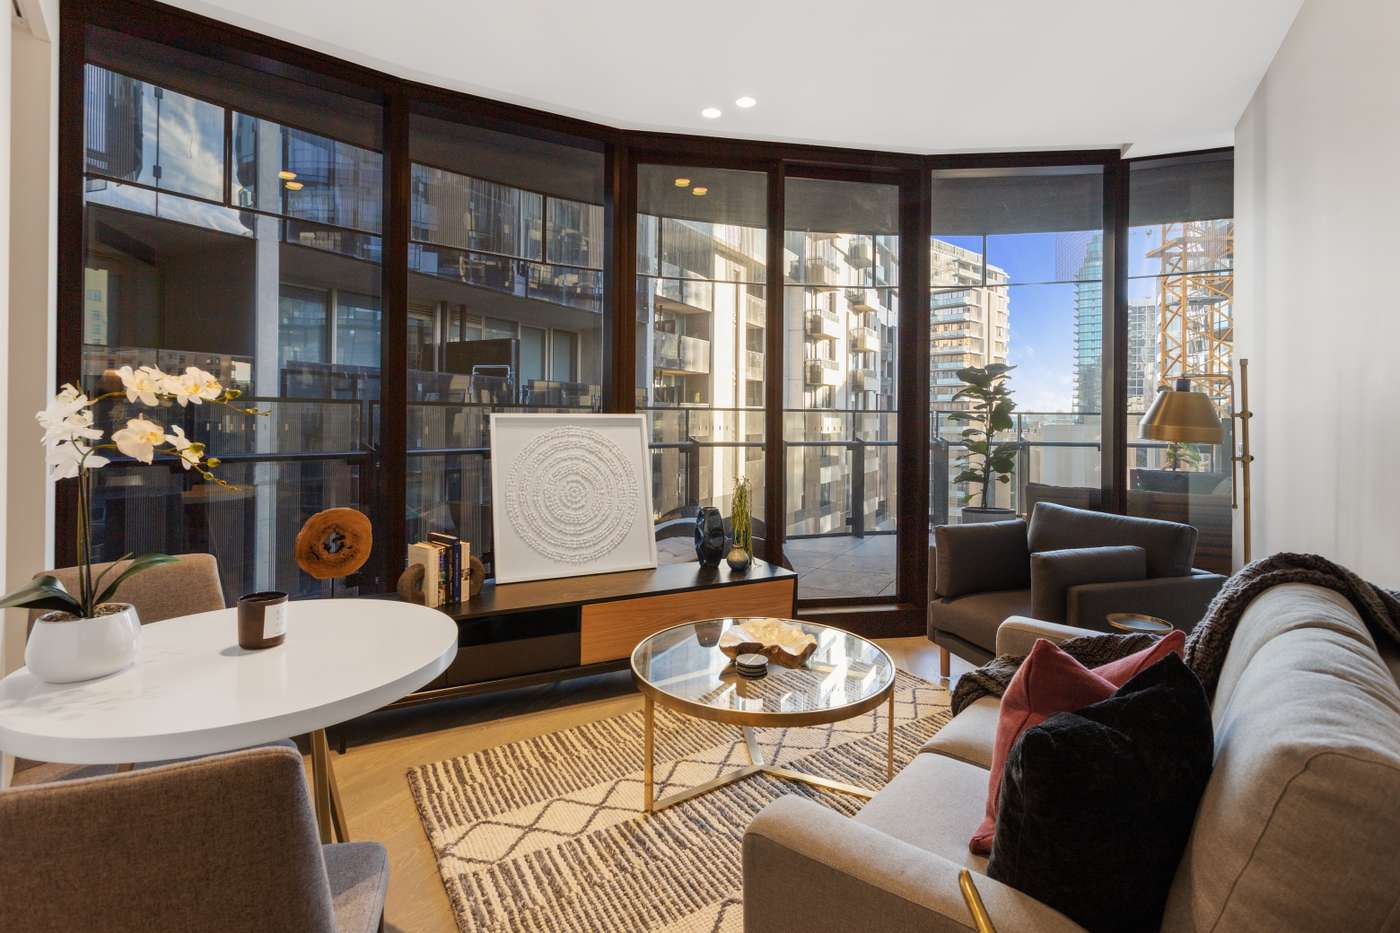 Main view of Homely apartment listing, 1007T/243 Toorak Road, South Yarra, VIC 3141